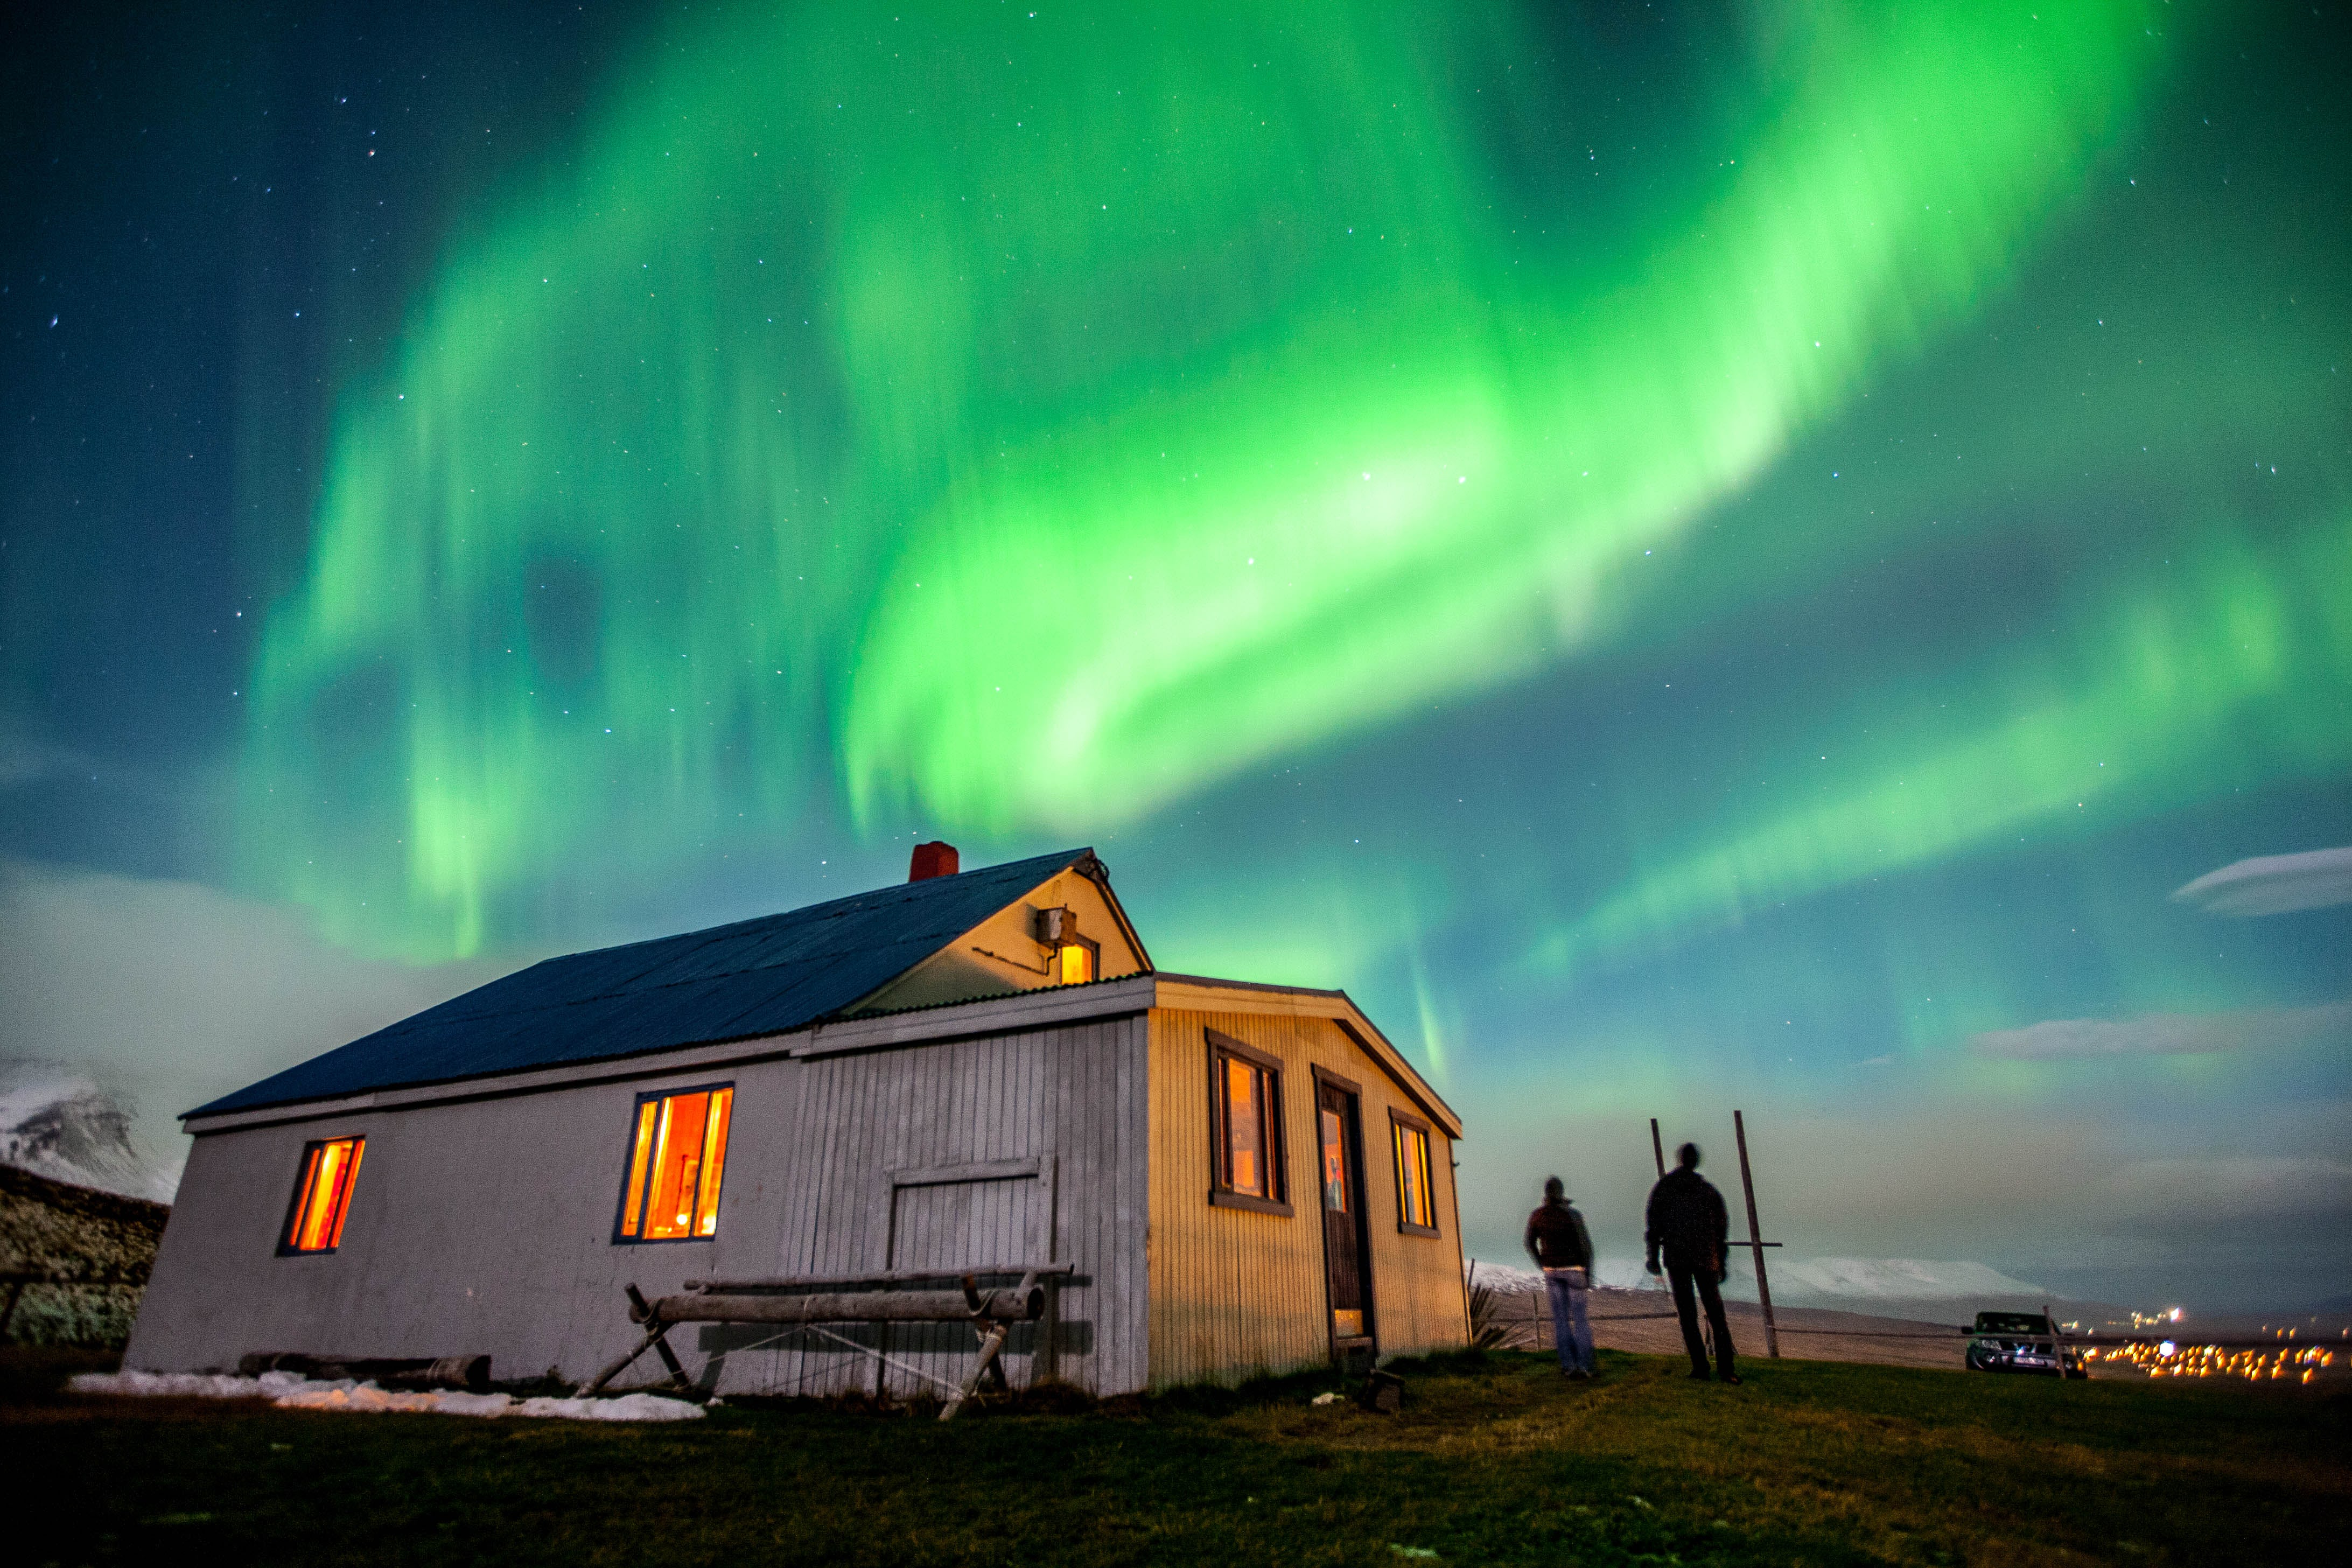 The Northern Lights appear in the Arctic regions of the Earth, making the North of Iceland the country's most ideal location of spotting them.